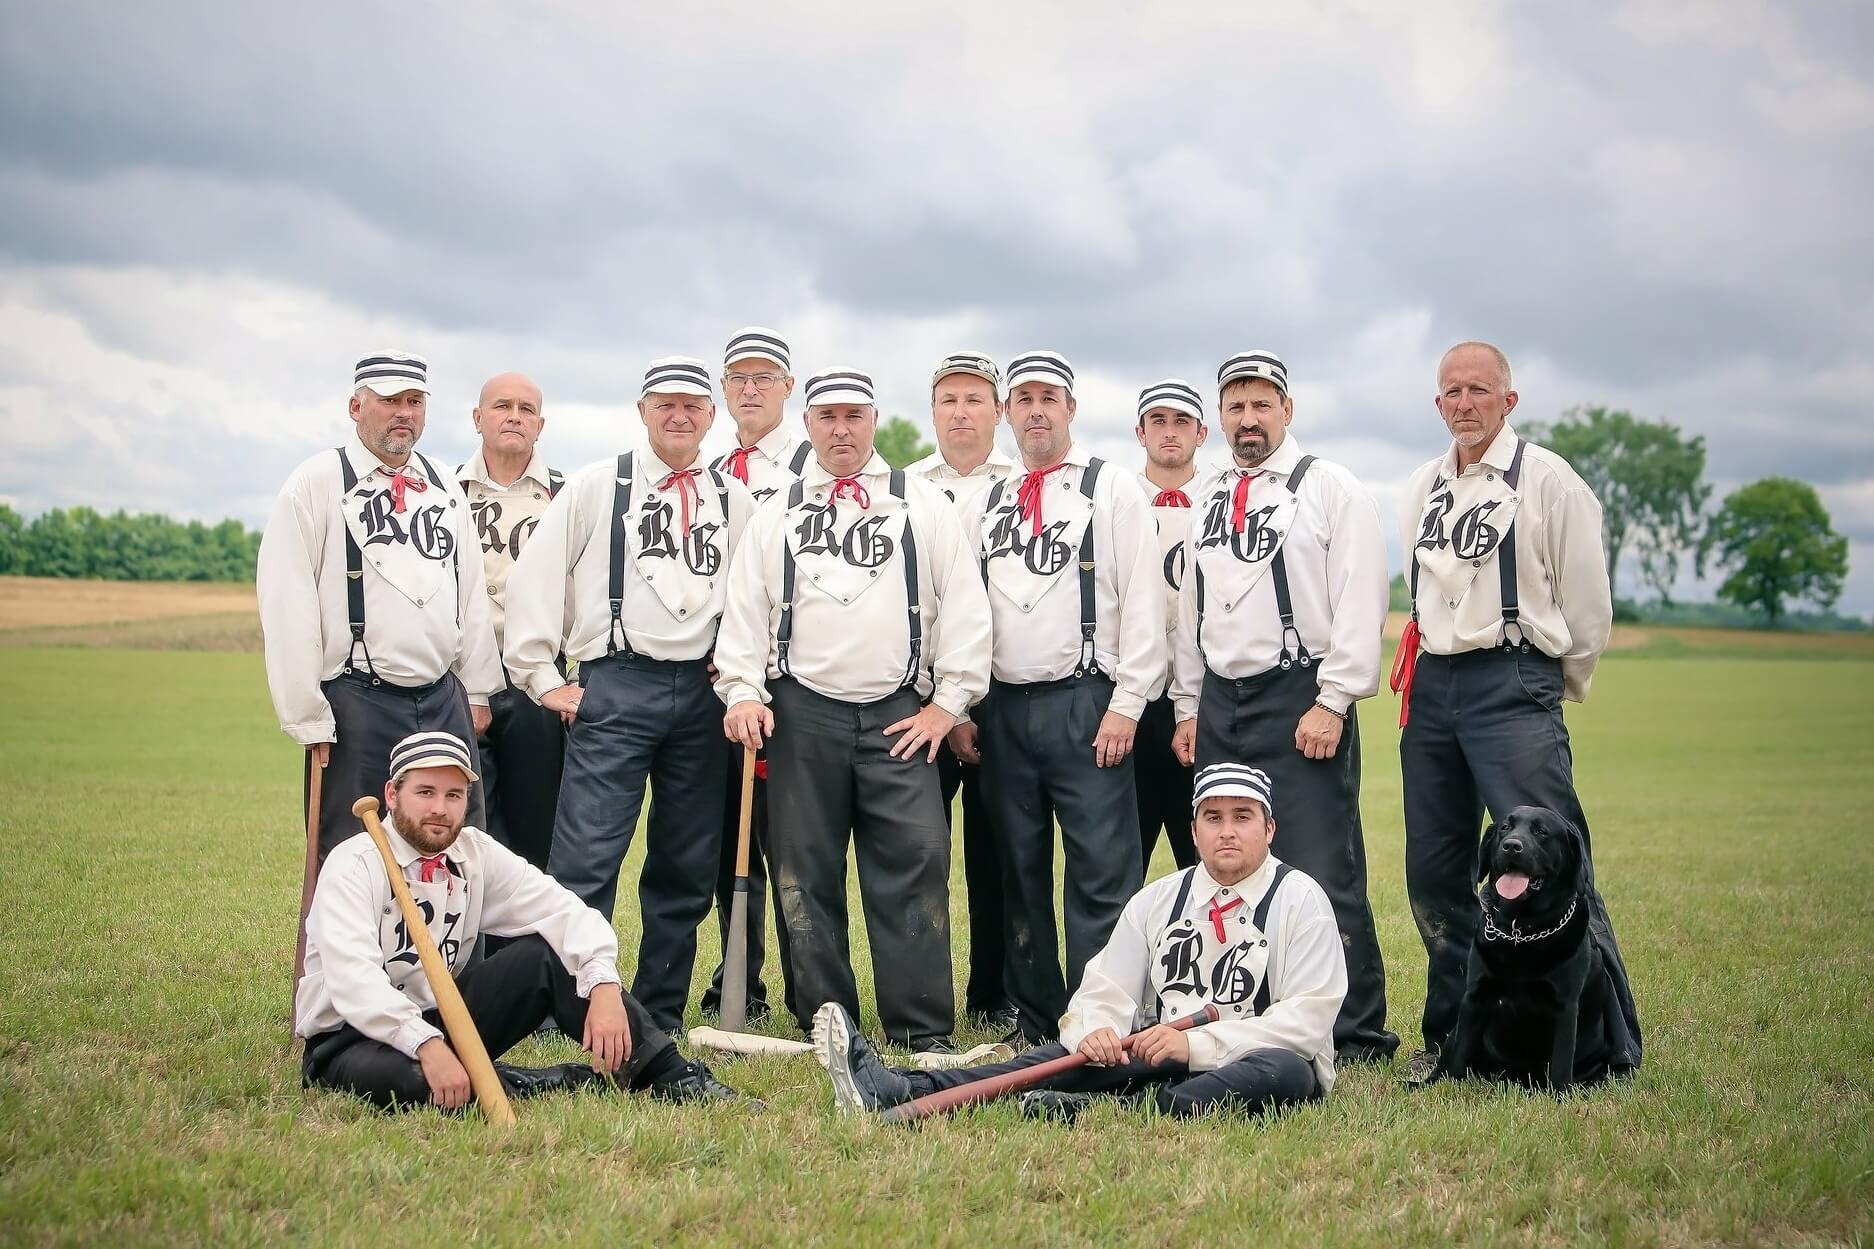 Rochester Grangers Vintage Base Ball Matches